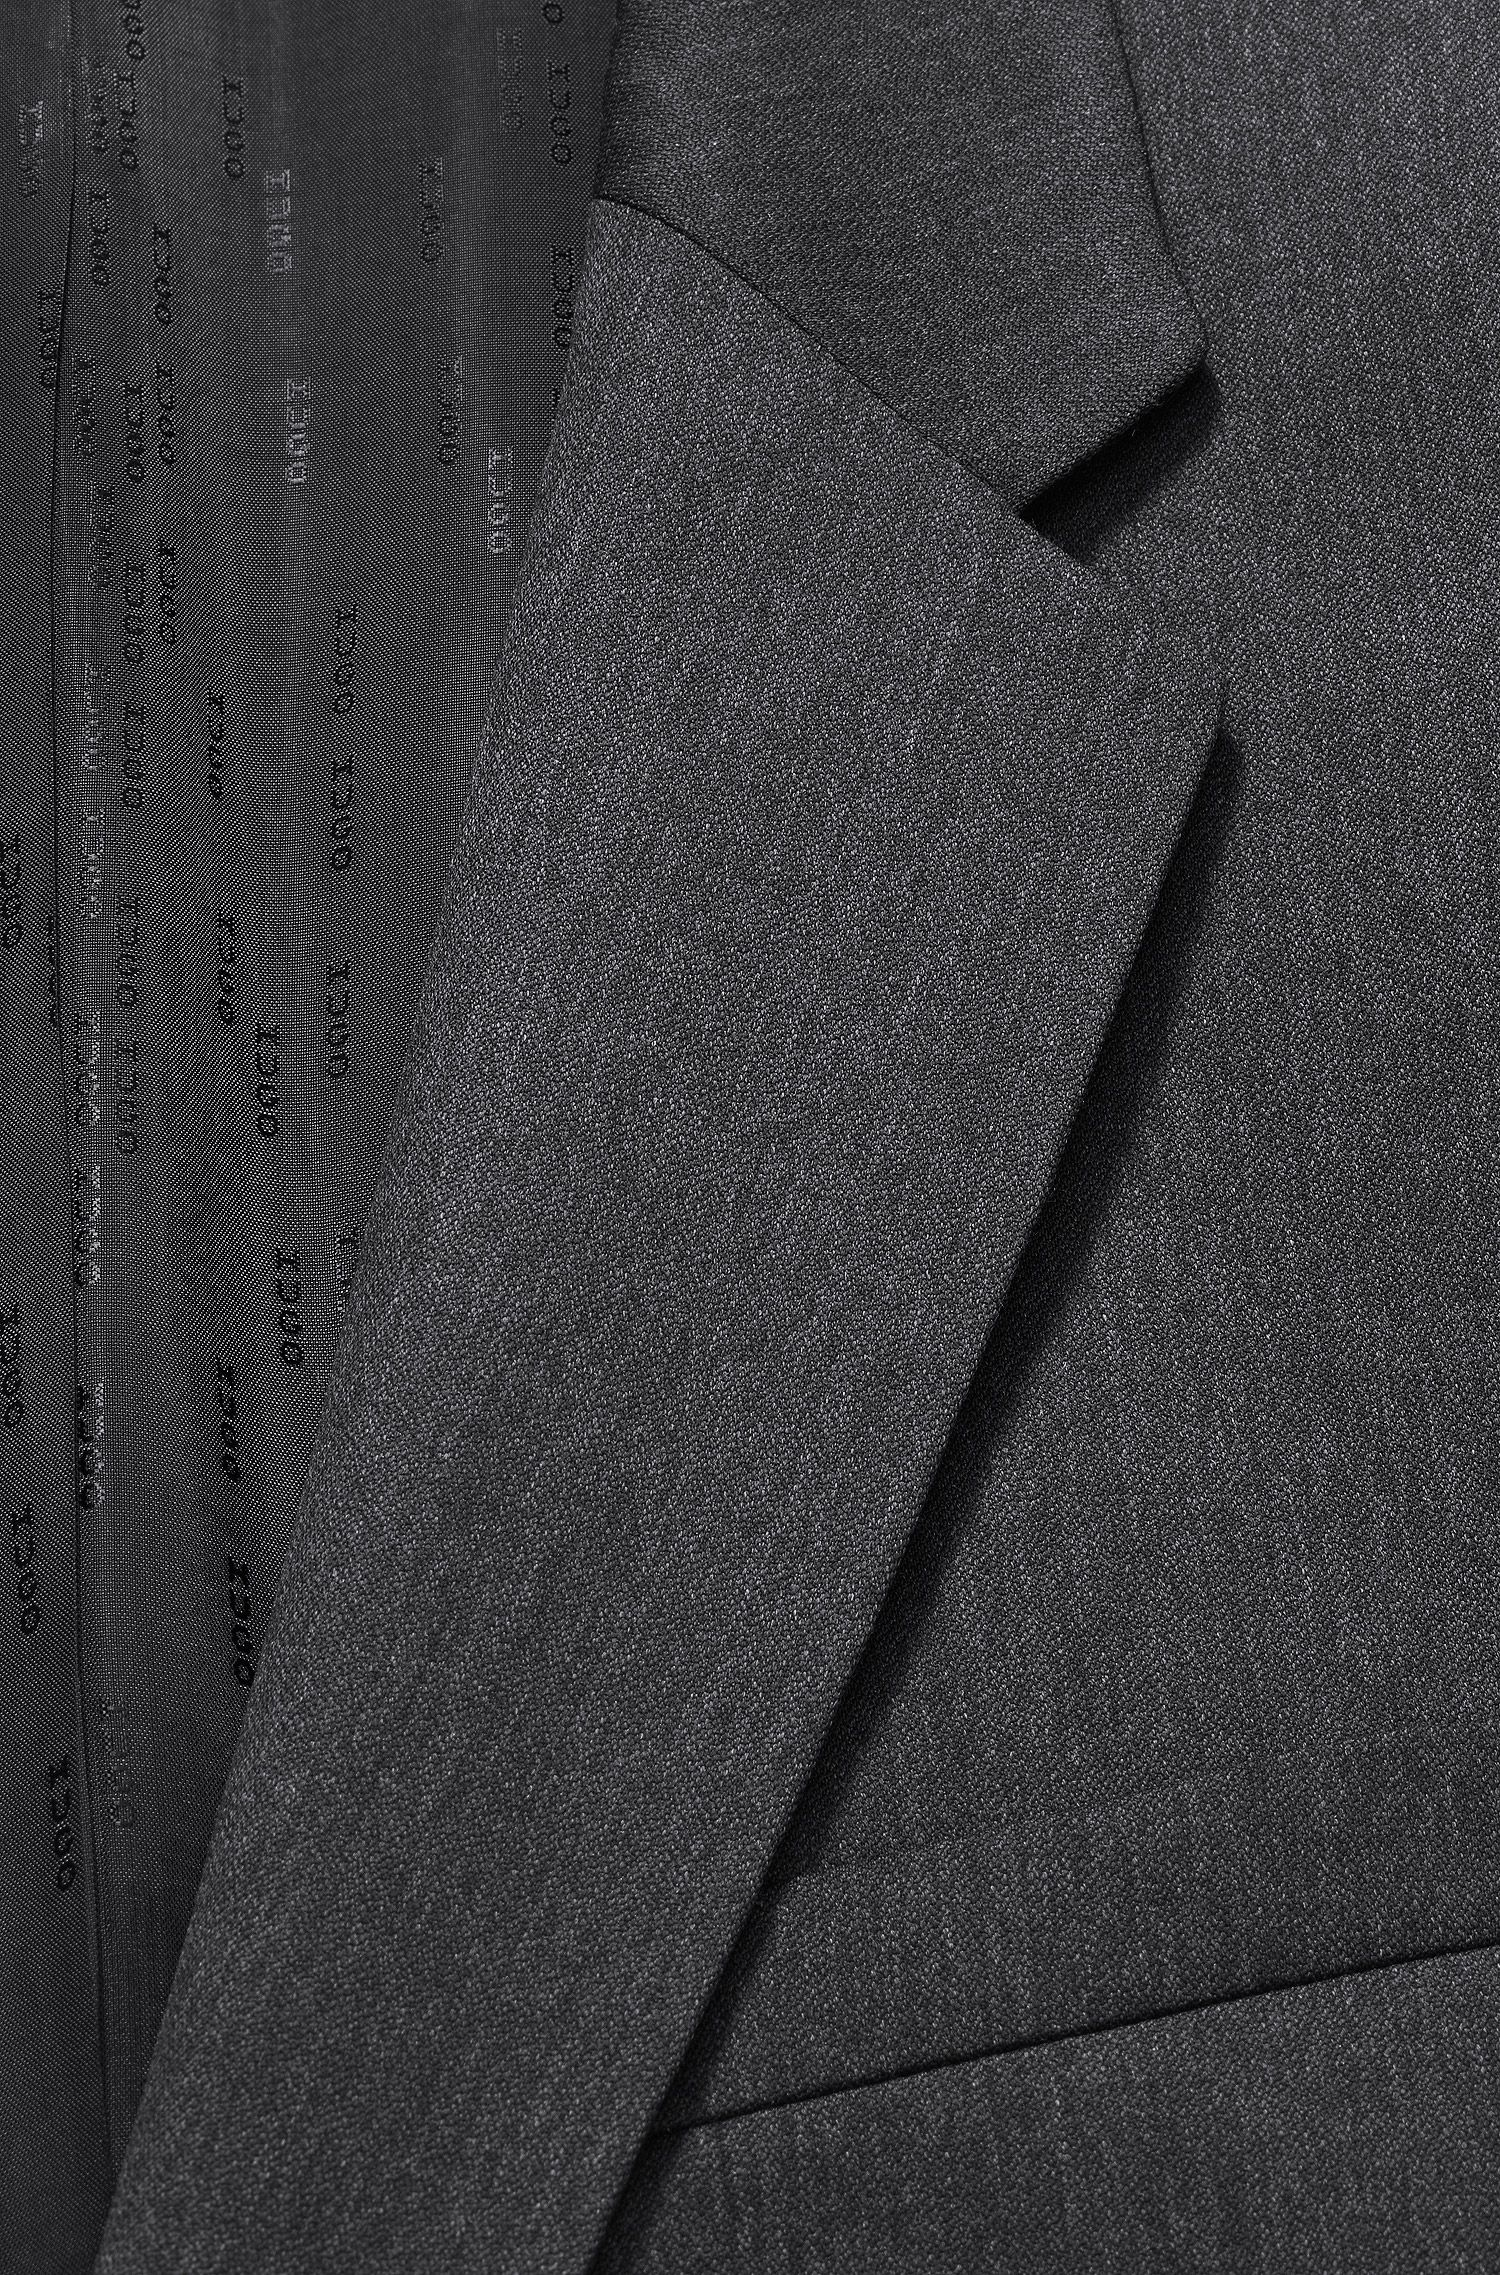 Virgin Wool Suit, Slim Fit |  Aeron/Hamen, Charcoal